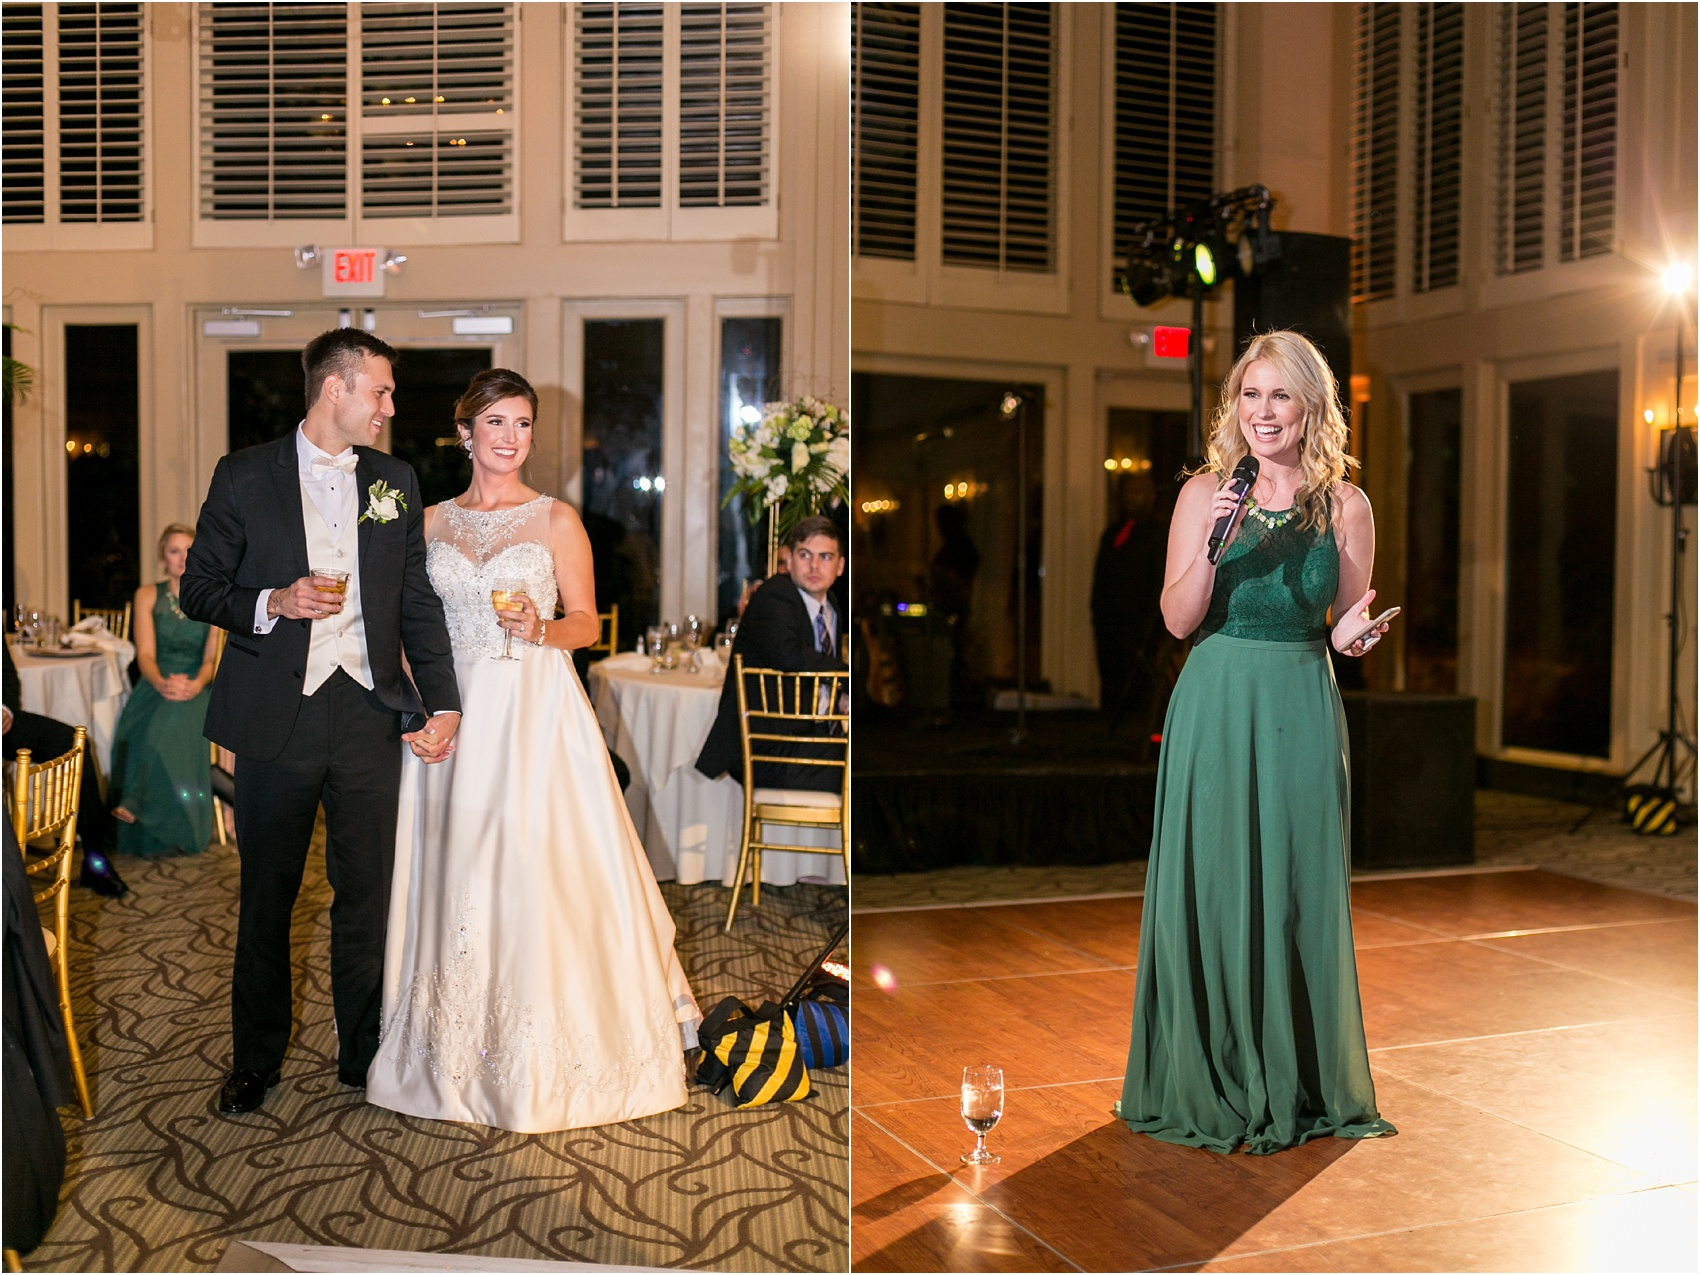 Savannah Eve Photography- Bottiglion-Scope Wedding- Sneak Peek-91.jpg